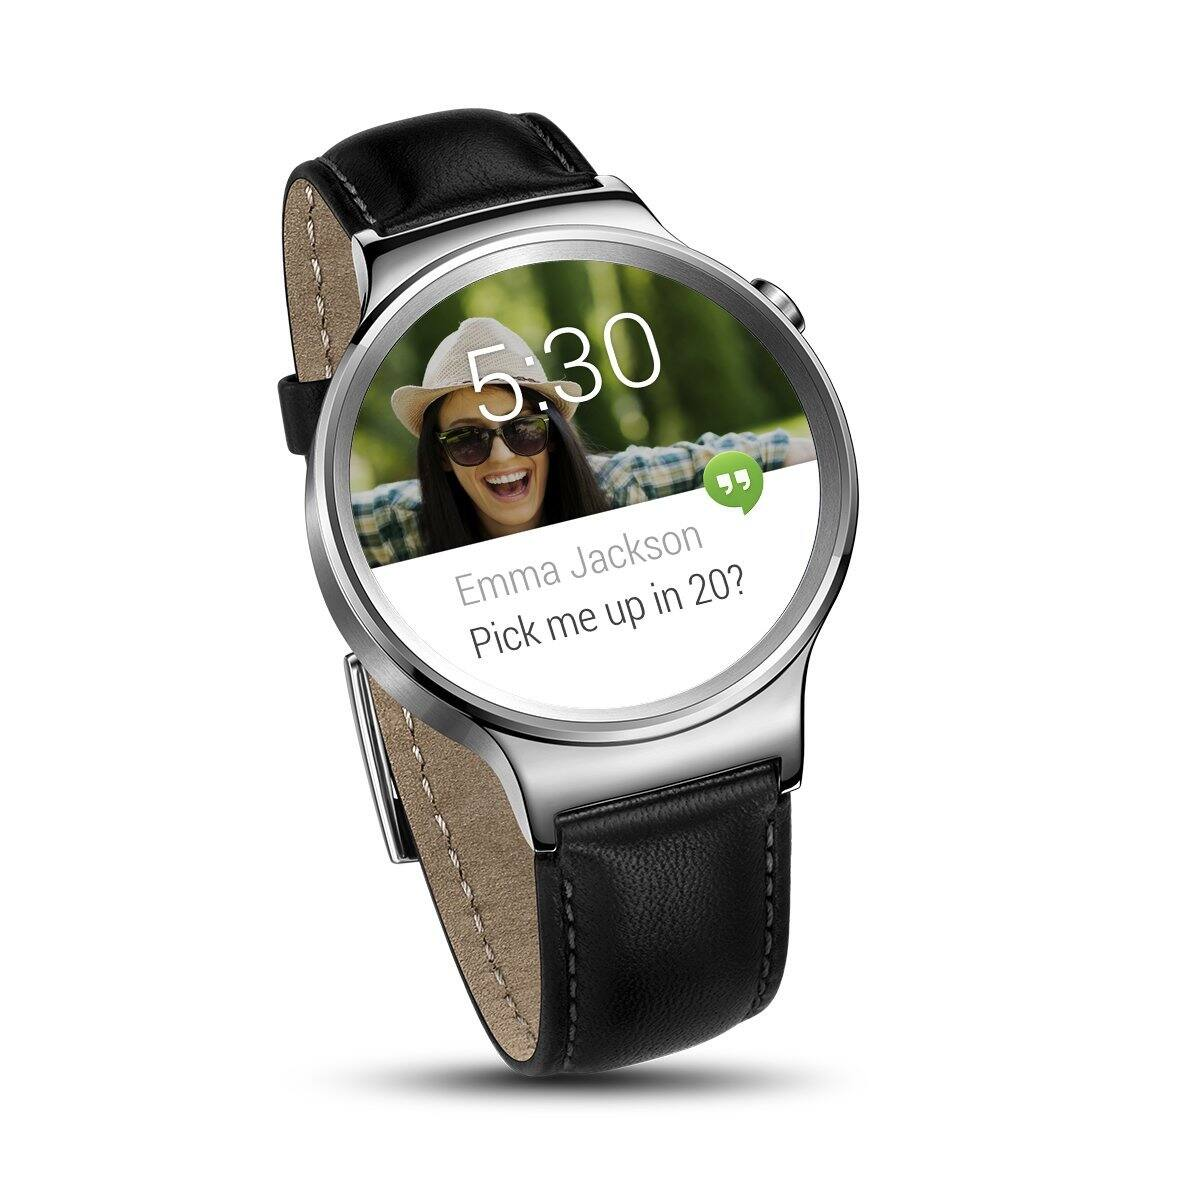 Huawei Smart Watches: Stainless Steel w/ Black Suture Leather Strap  from $270 & More + Free Shipping